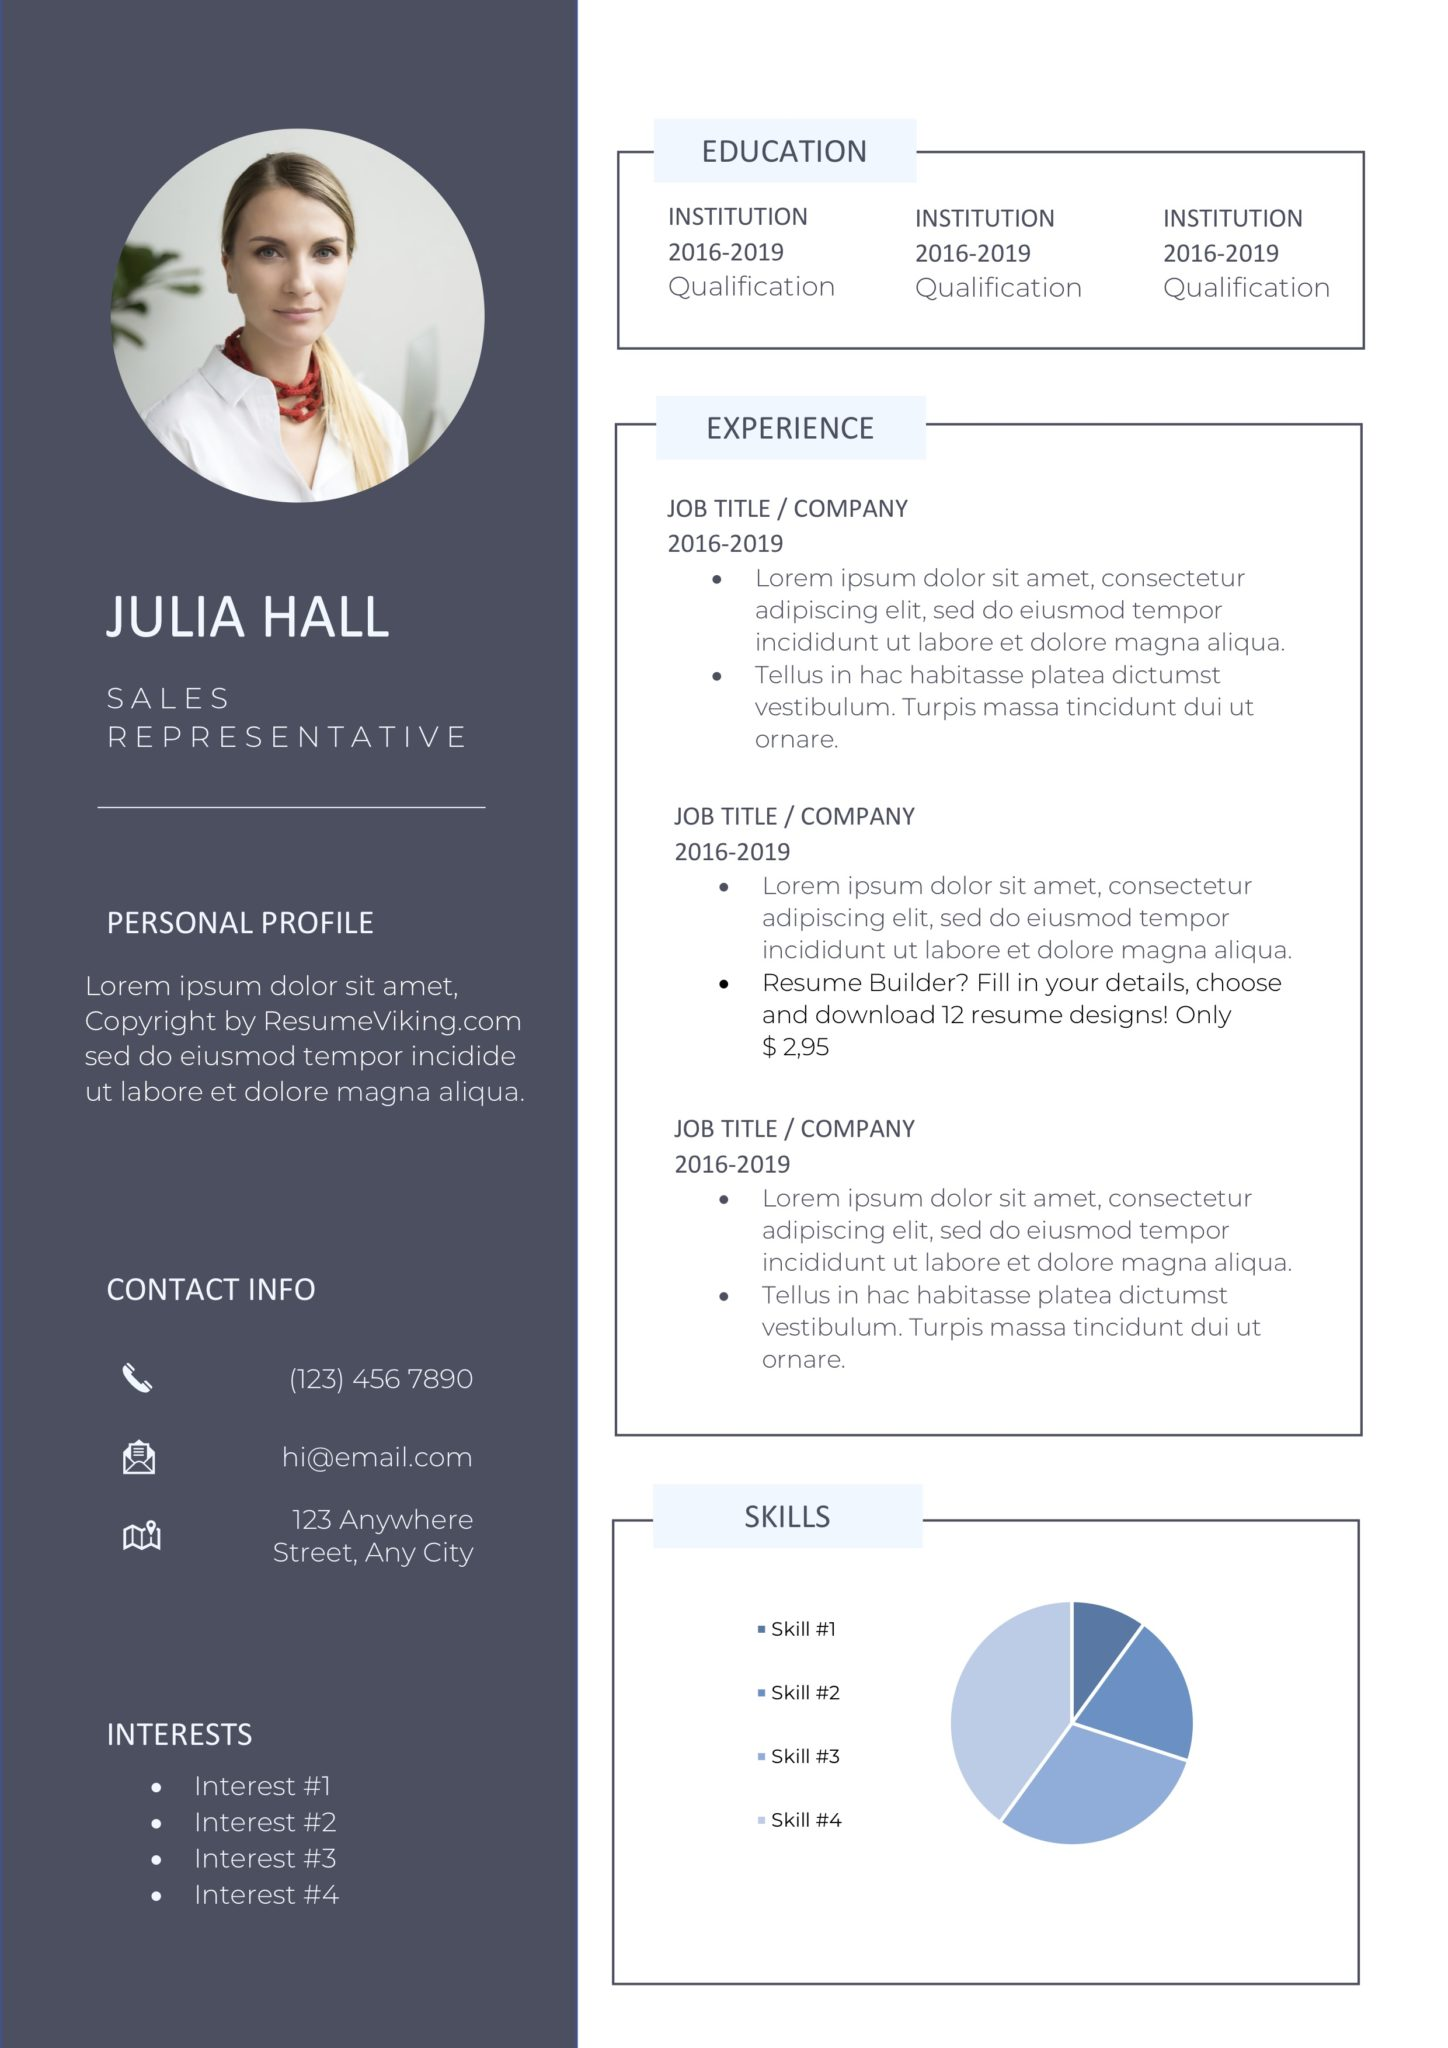 free word resume templates in ms template resumeviking scaled health administration Resume Free Resume Templates Word